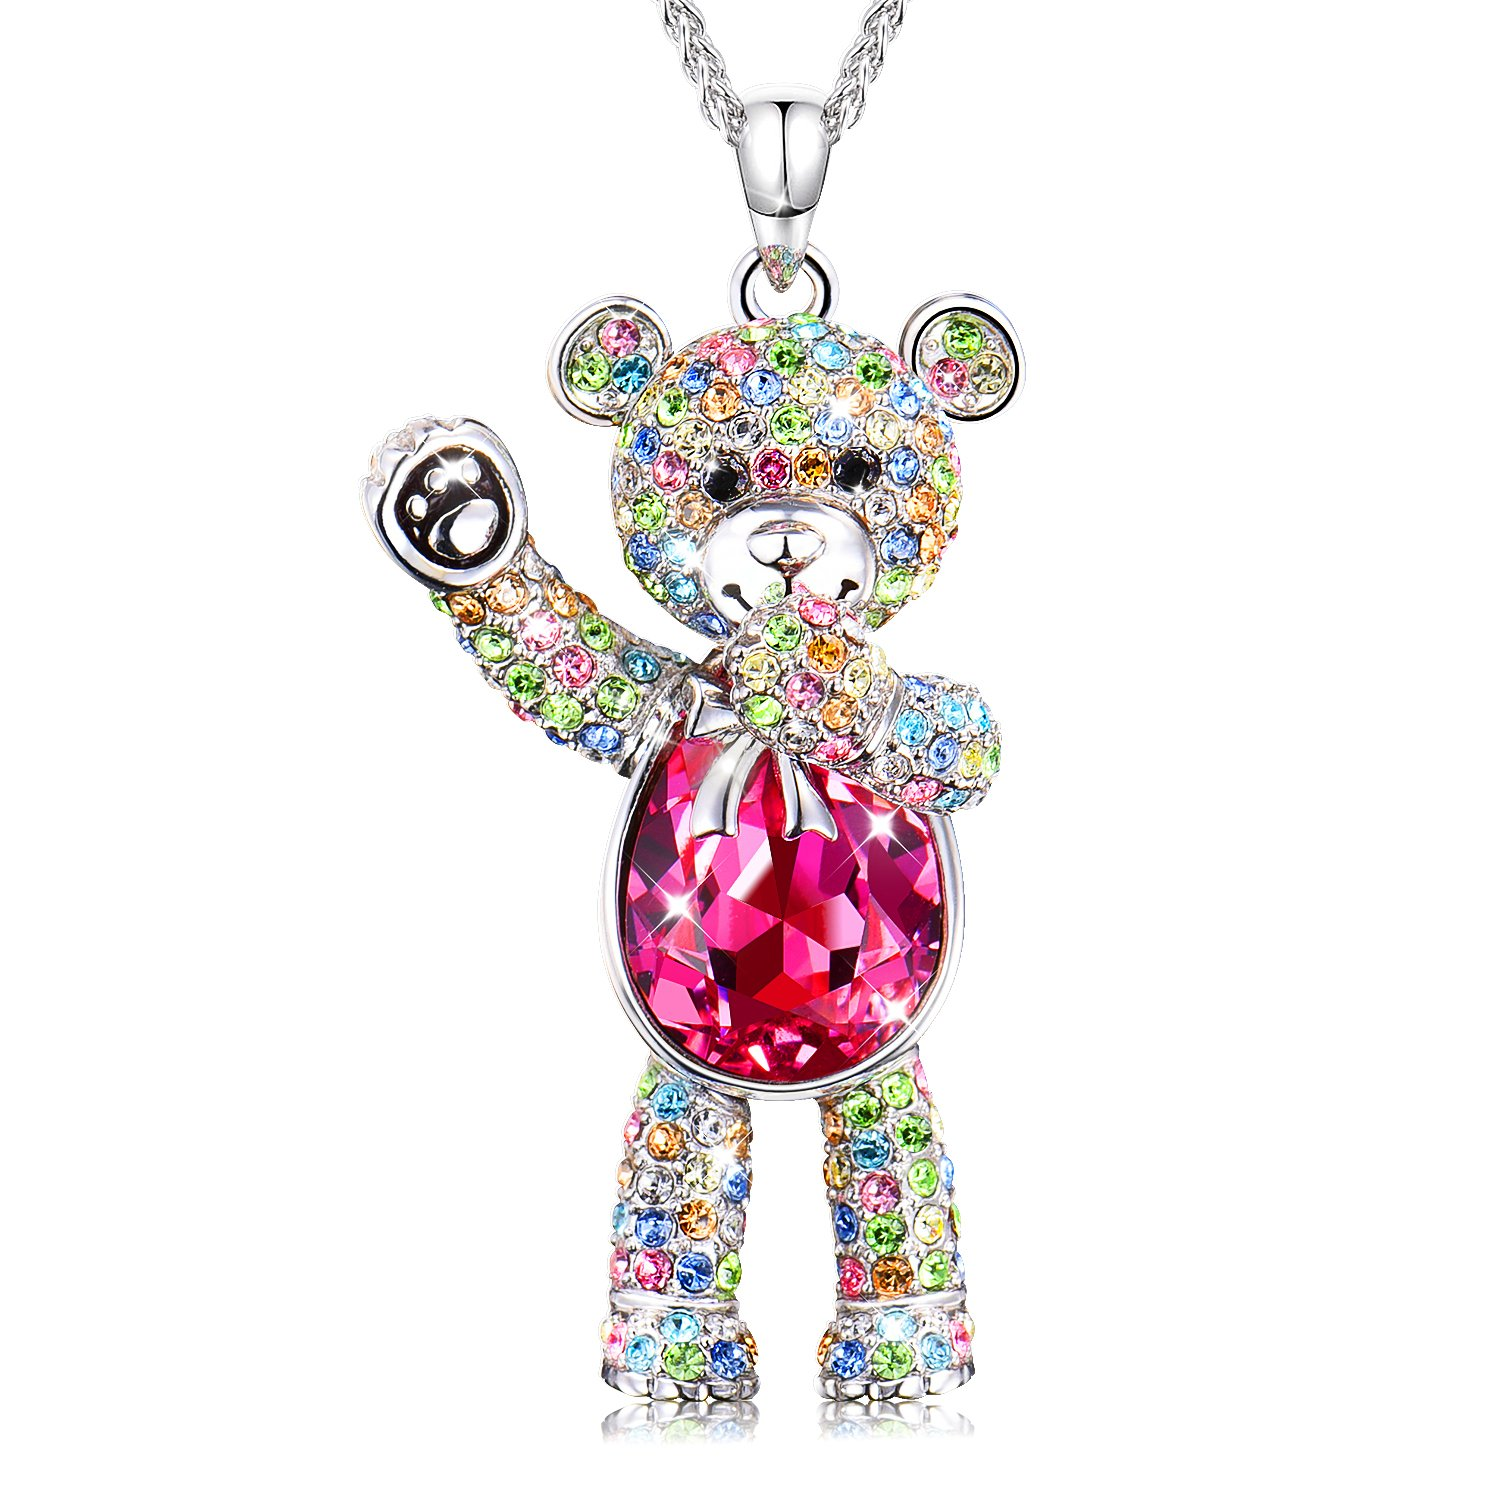 f6dbbd8c3586c8 Conmisun Necklaces for Women Girls Crystals from Swarovski Pendant Cute Teddy  Bear Guards Your Love, Jewelry Gifts Anniversary Birthday Friendship  Blue&Ruby